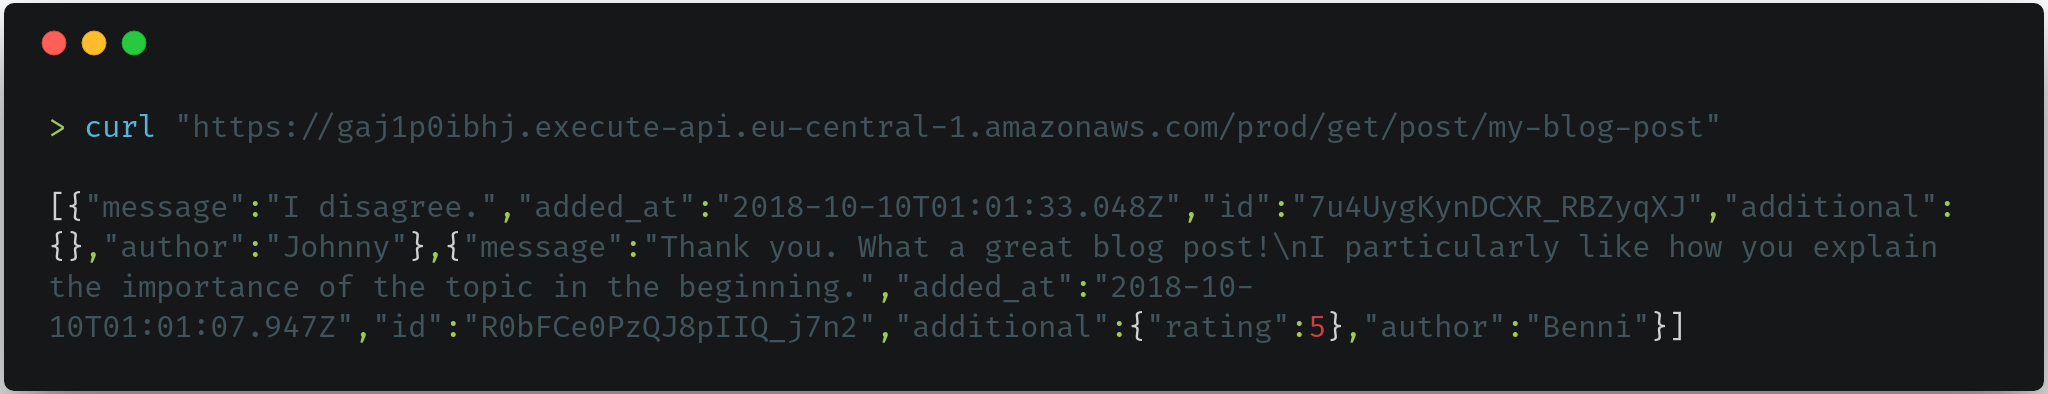 Accessing the comments from a blog post via the yace API using curl